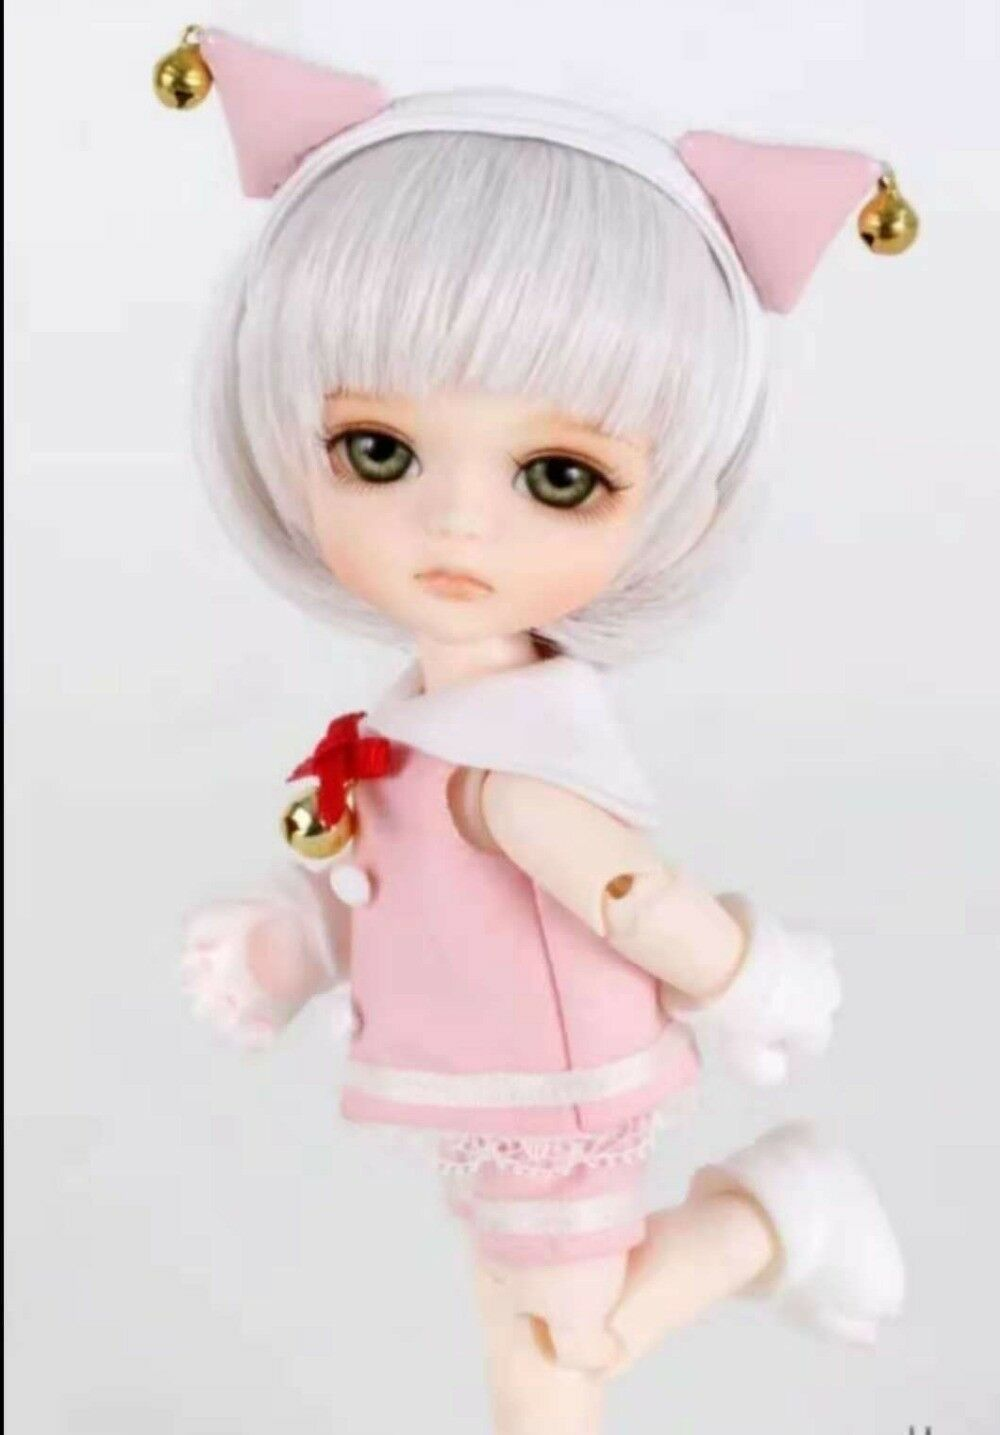 1 8 Bjd Doll Mile Gelb Lati Tiny Cute Recast SD Dollfie Anime Manga